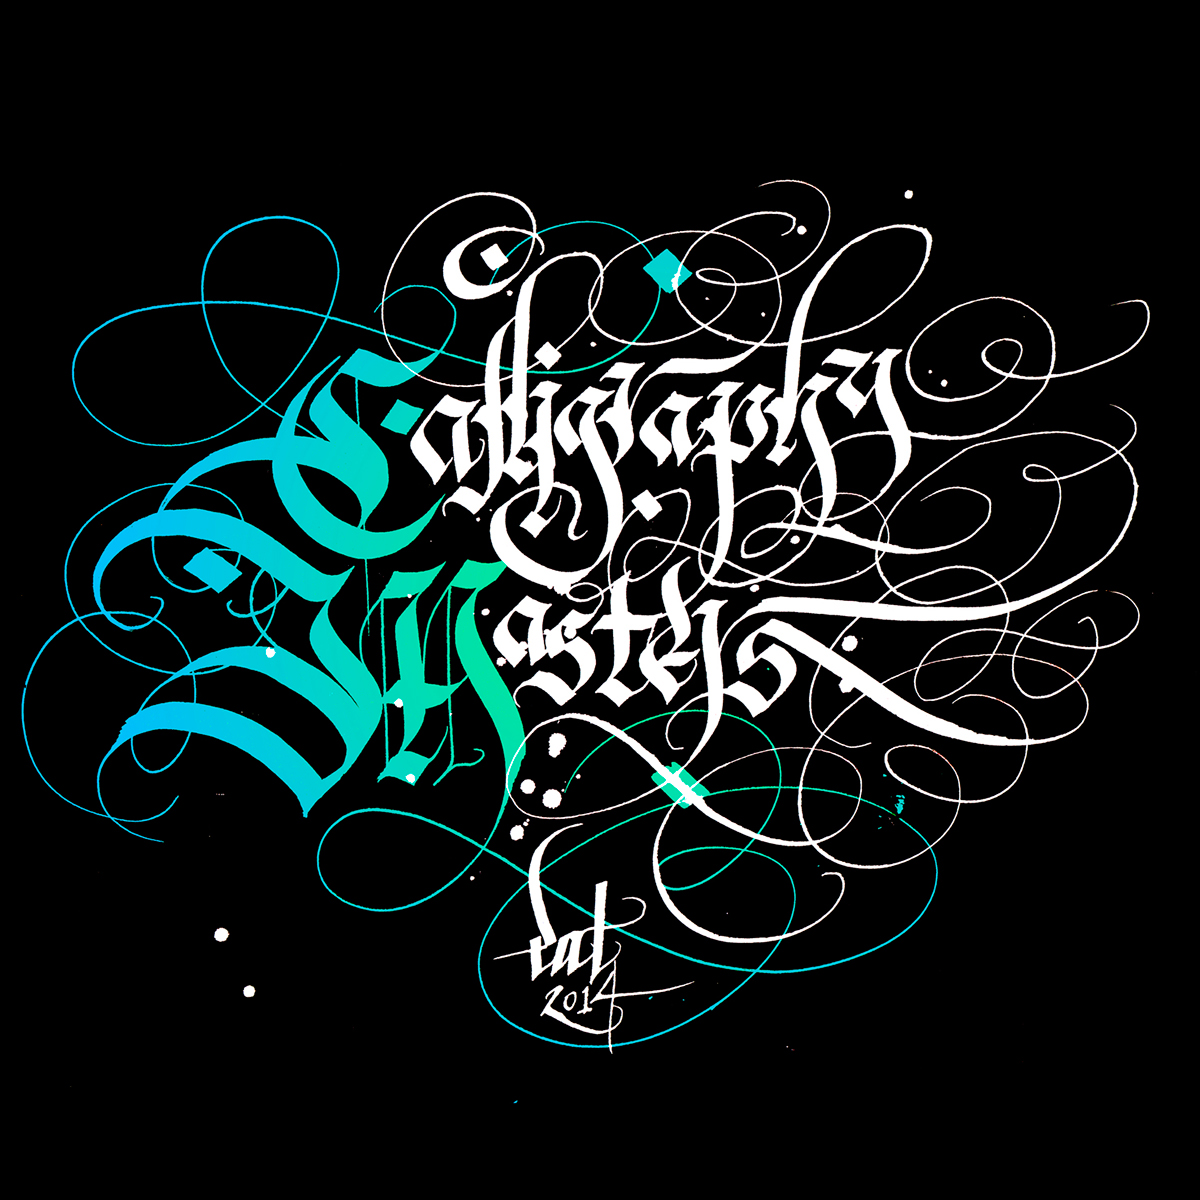 Calligraphy masters contest eat on behance